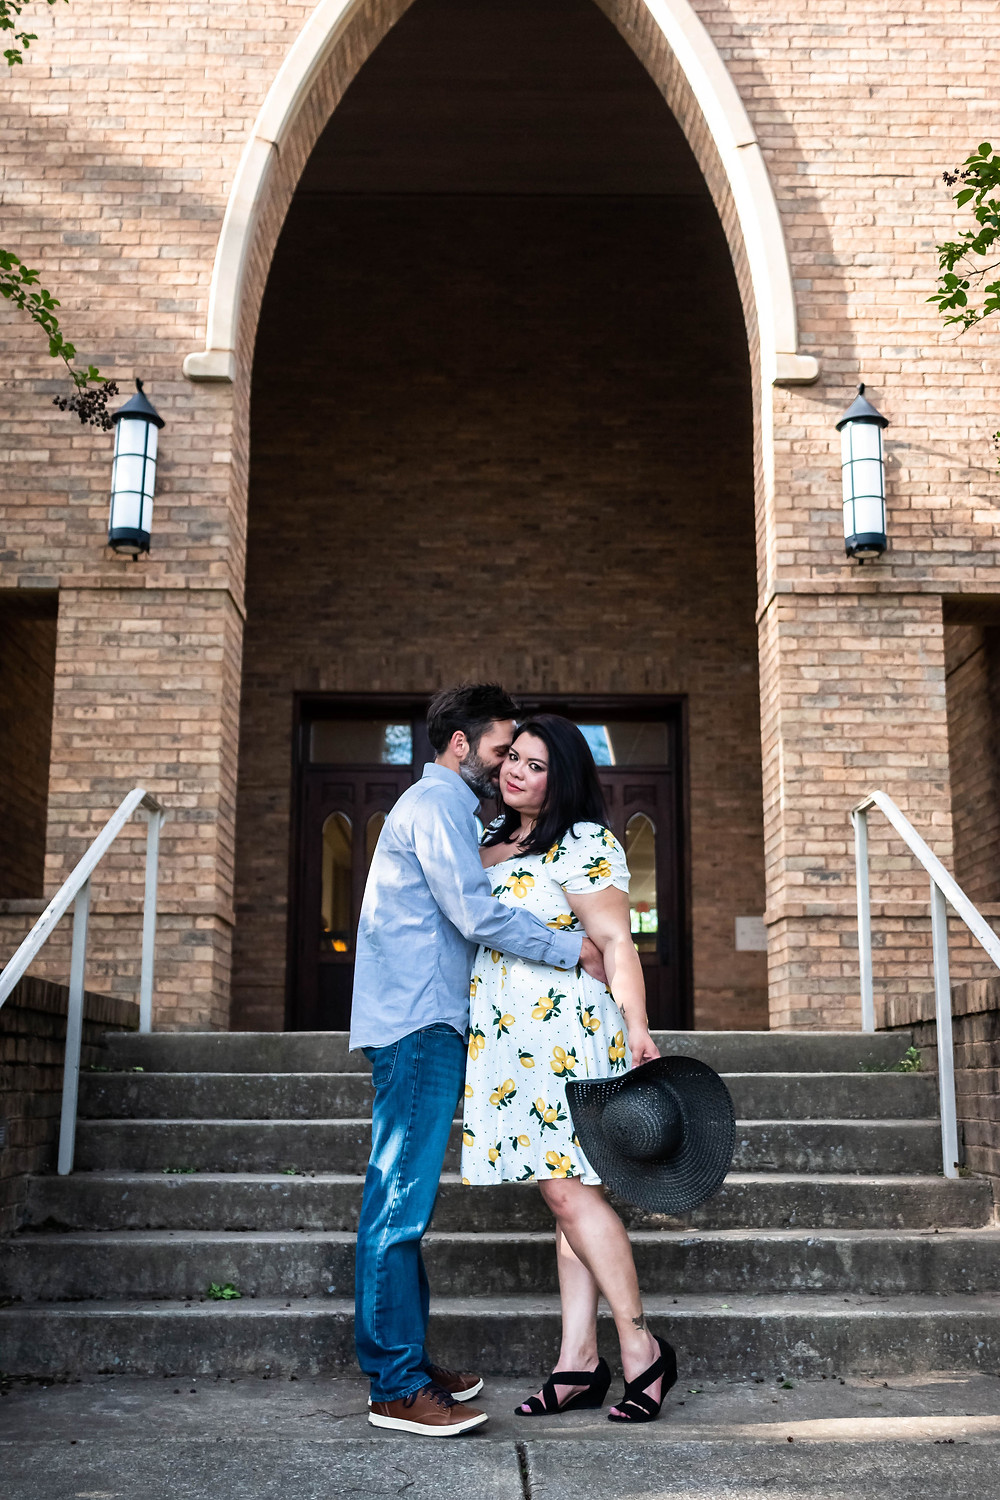 Cute couple share a kiss on steps of historic church in downtown Murfreesboro